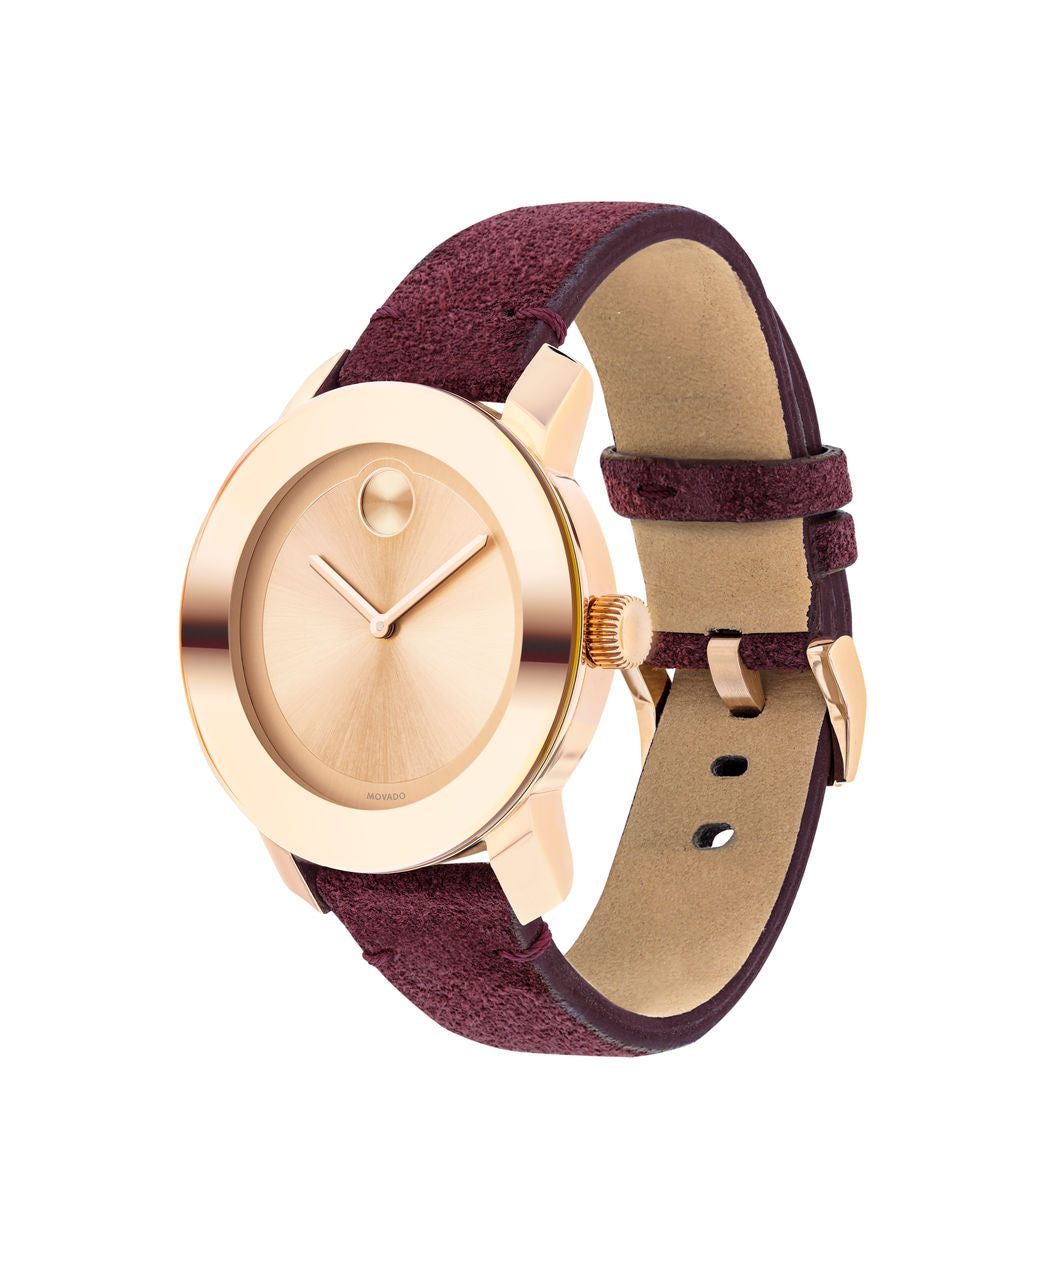 Movado Bold - Rose Gold with Red Suede Leather Strap